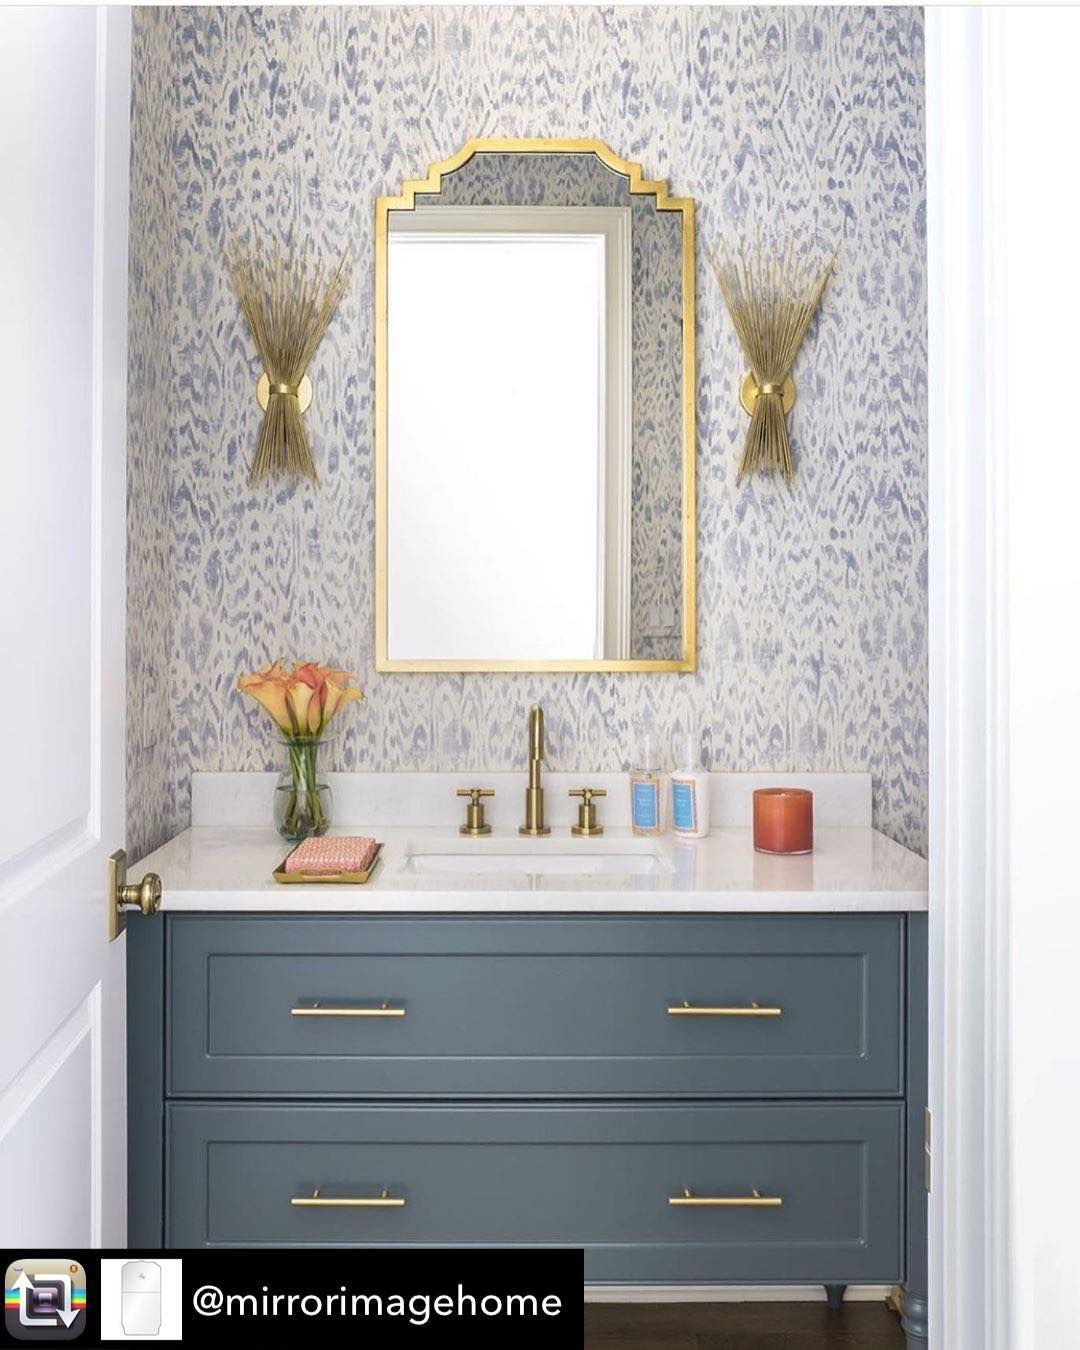 "Peridot- Home & Gift Boutique on Instagram: ""One of our favorite mirror sources @mirrorimagehome is featured in this powder room by @cindymccorddesign. It's absolutely stunning! Come…"""